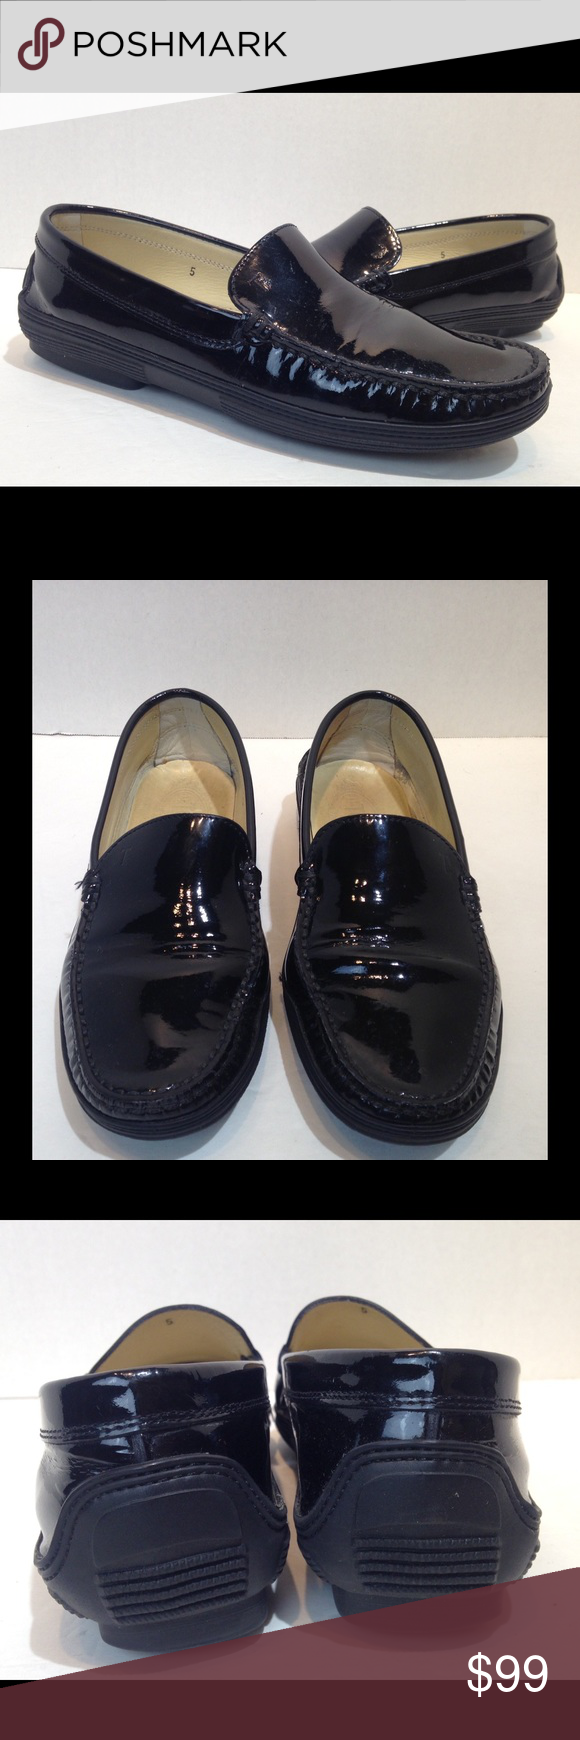 Black loafers, Patent leather loafers